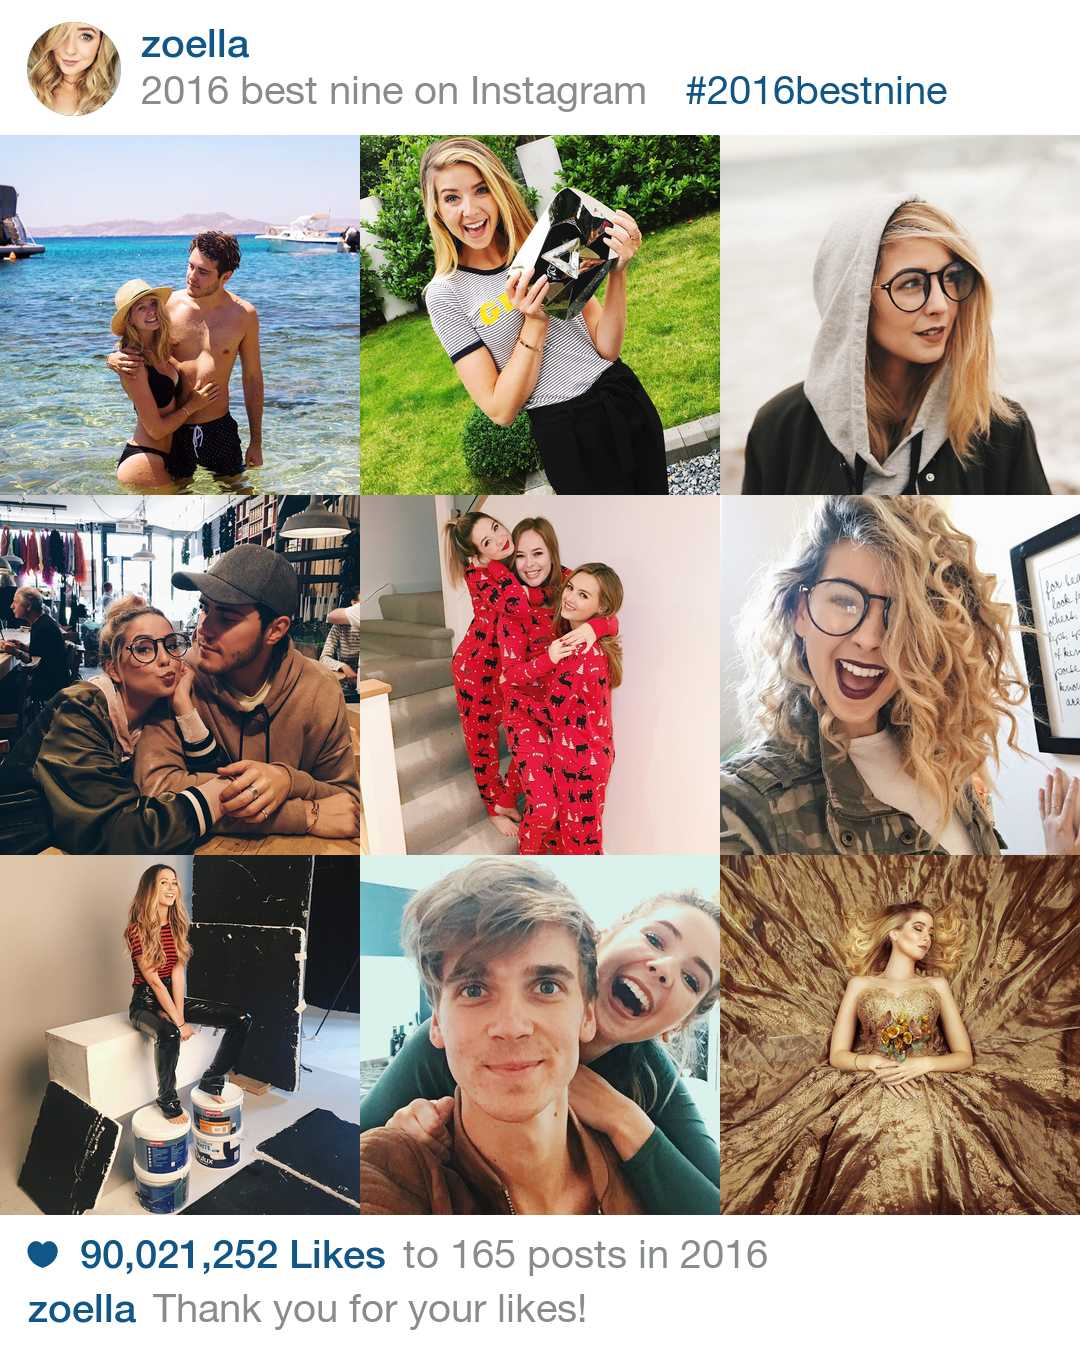 zoella_full